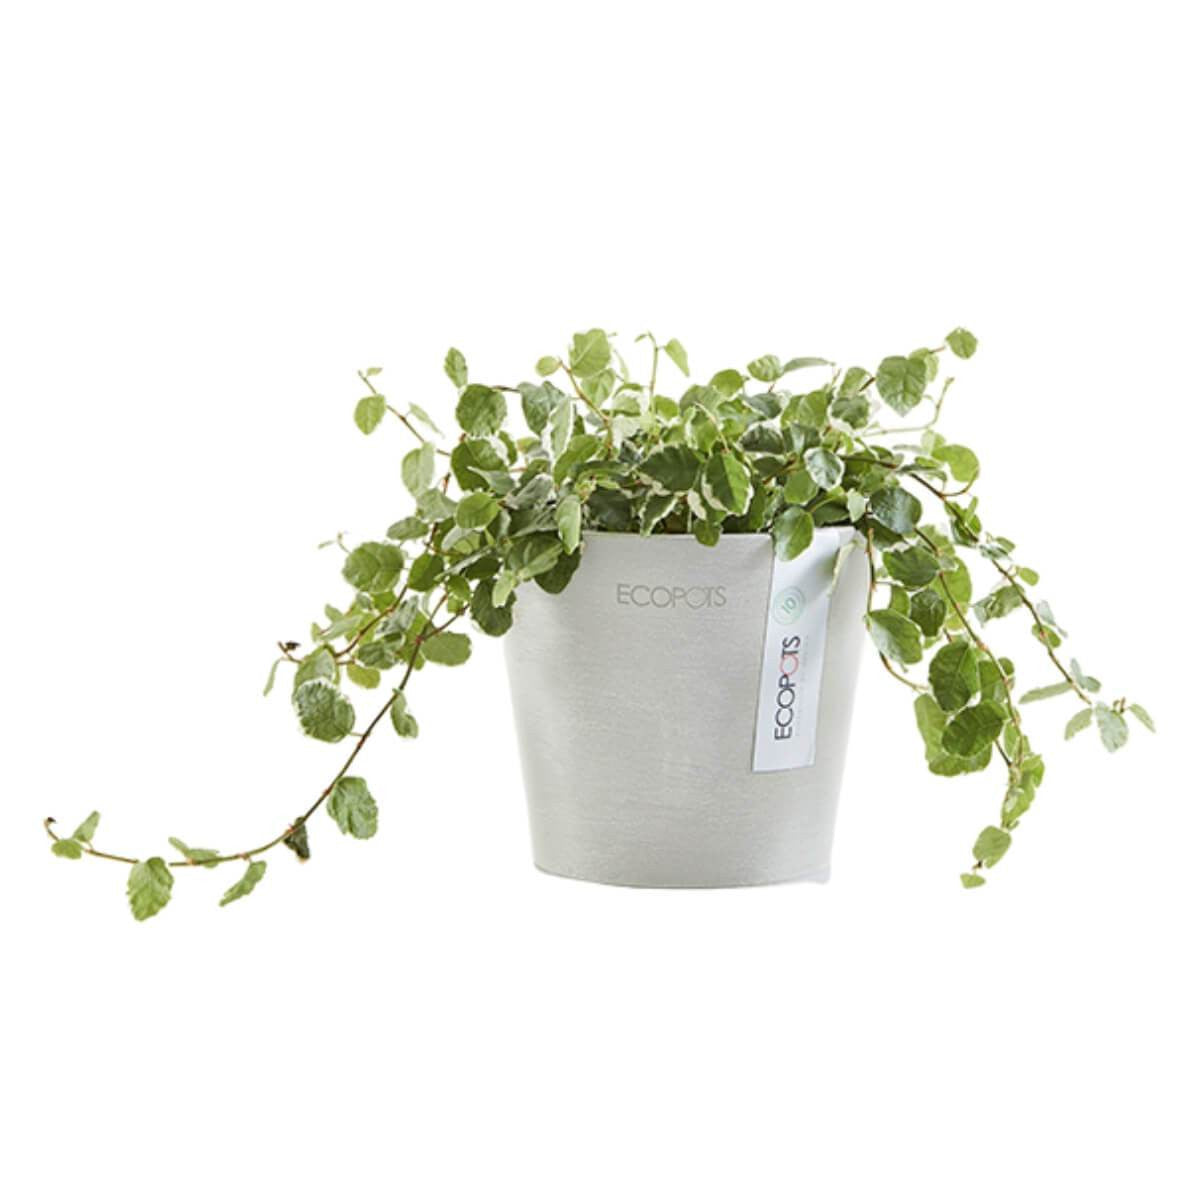 Ecopots Amsterdam pot 10.5 cm white with plant